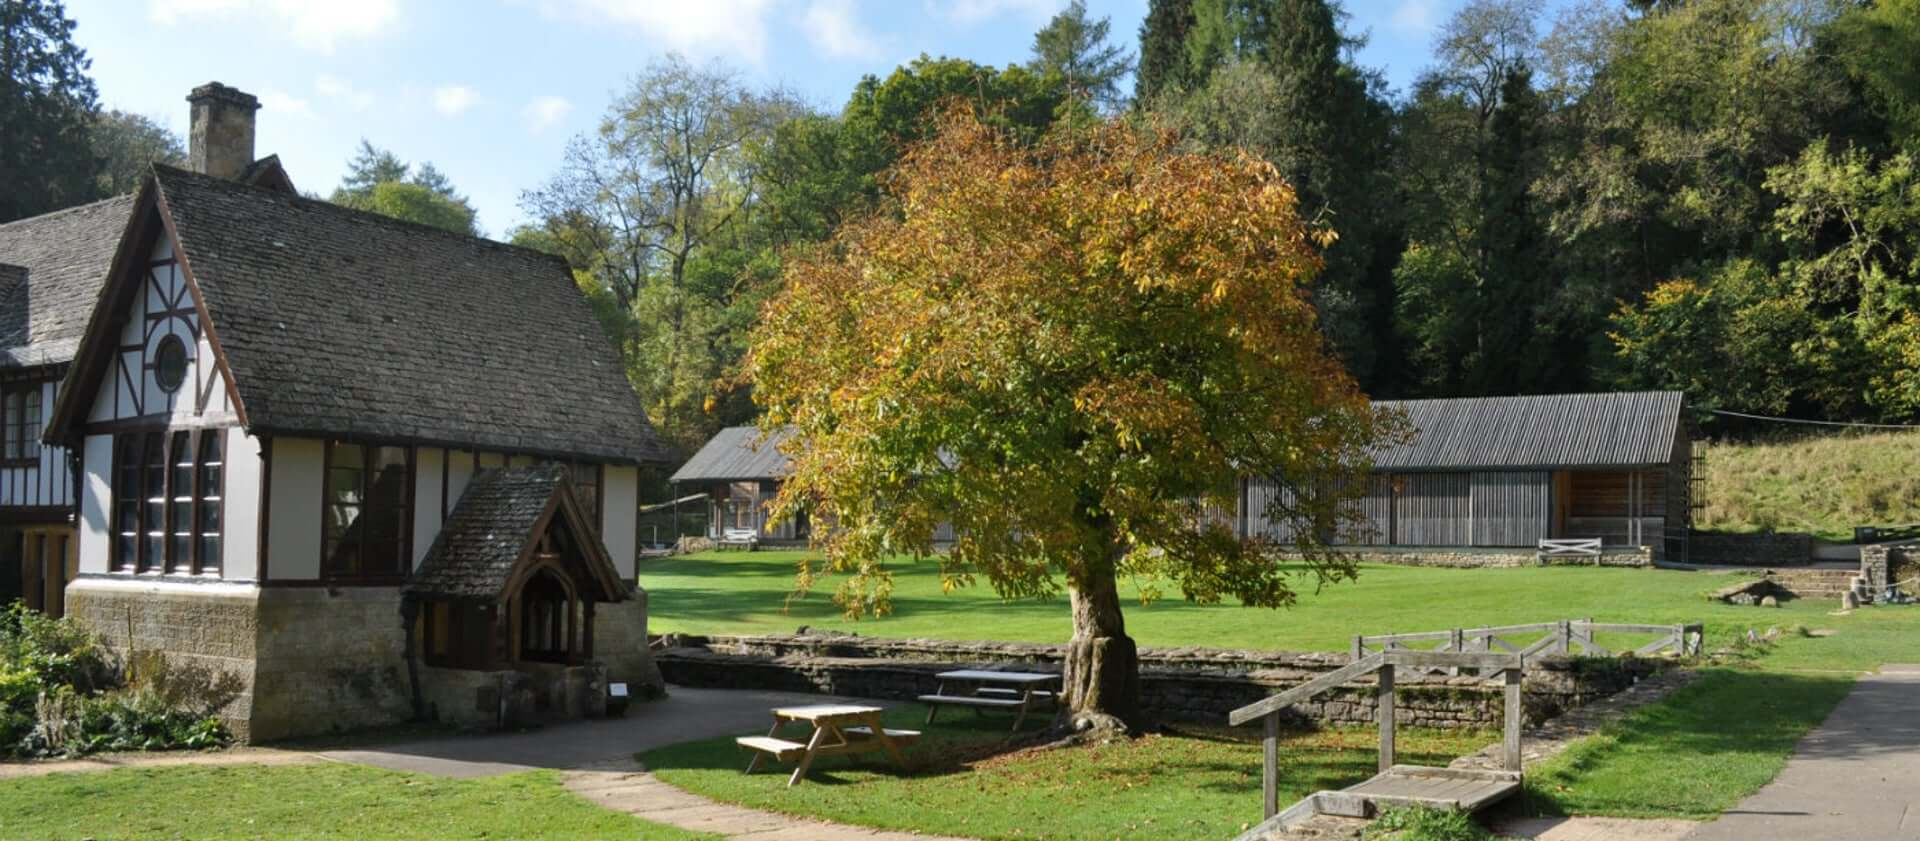 The exterior of Chedworth Roman Villa demonstrates the beautiful nature that surrounds it.